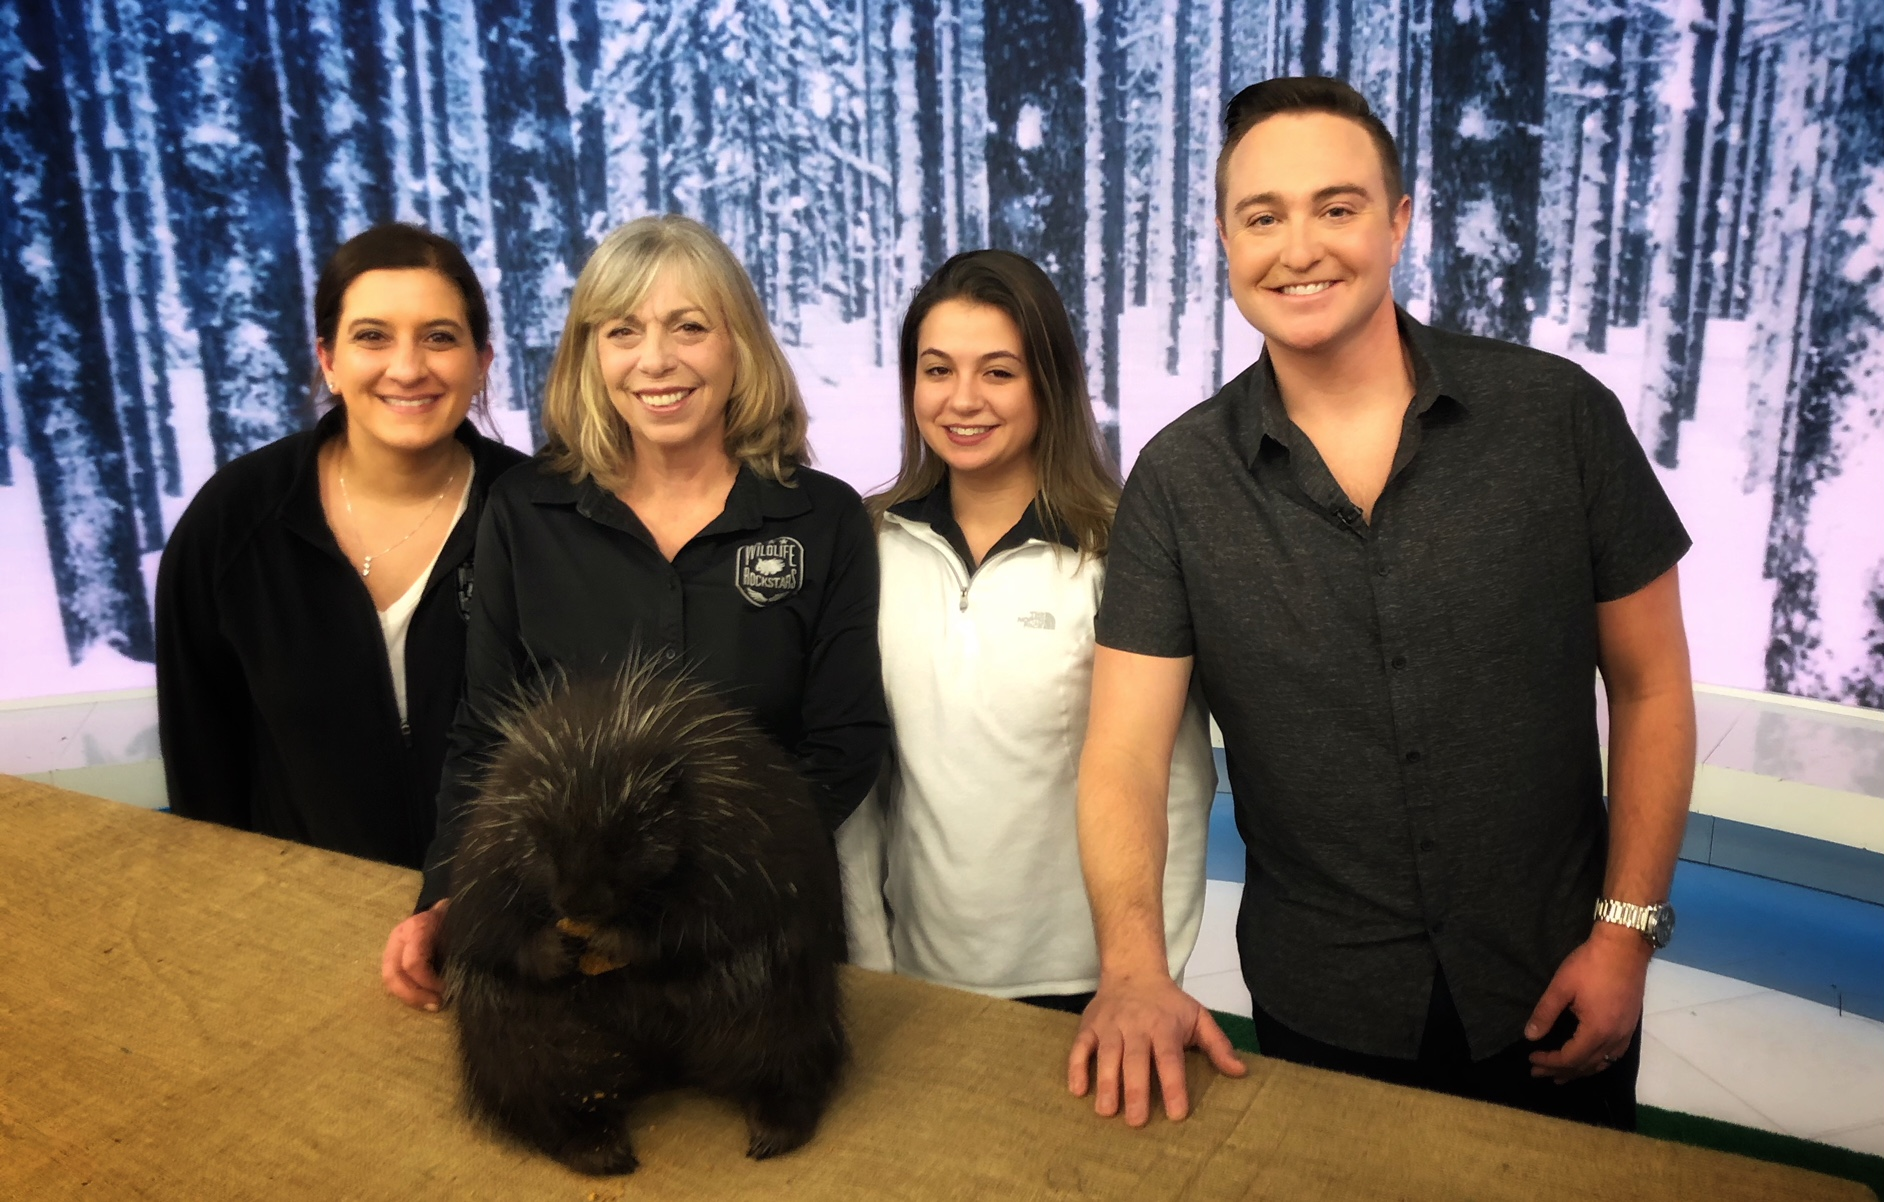 The amazing team at Wildlife Rockstars behind-the-scenes on set after the segment.